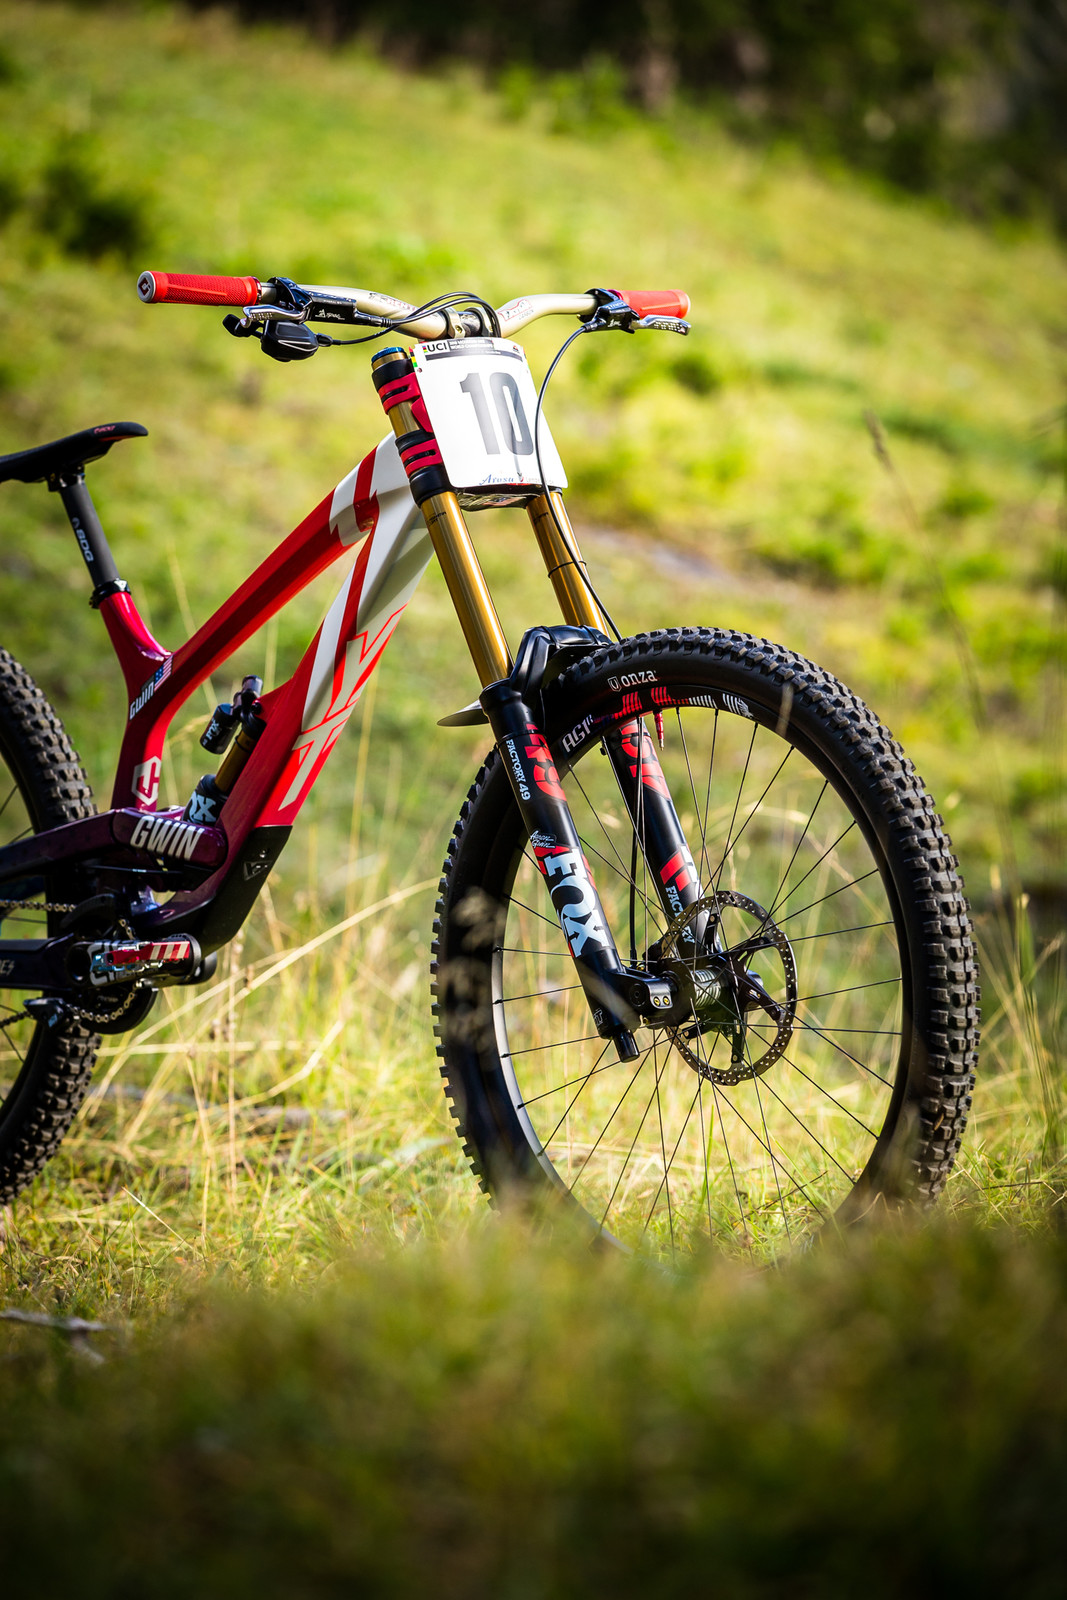 Dropping Zeroes - WORLD CHAMPS BIKE - Aaron Gwin's YT TUES - Mountain Biking Pictures - Vital MTB